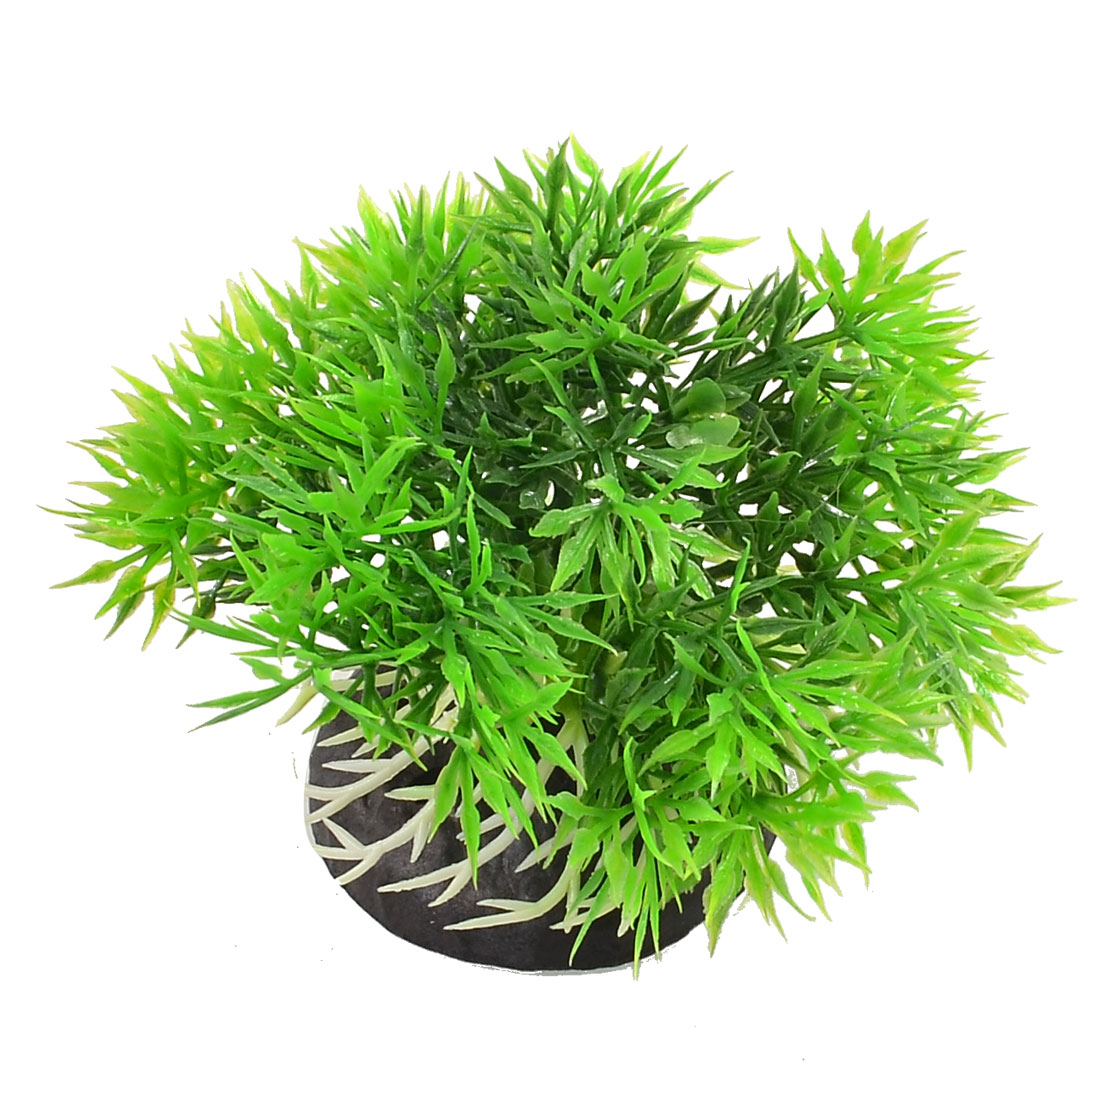 Aquarium Fish Tank Ornament Green Grasses White Root Style Water Plant